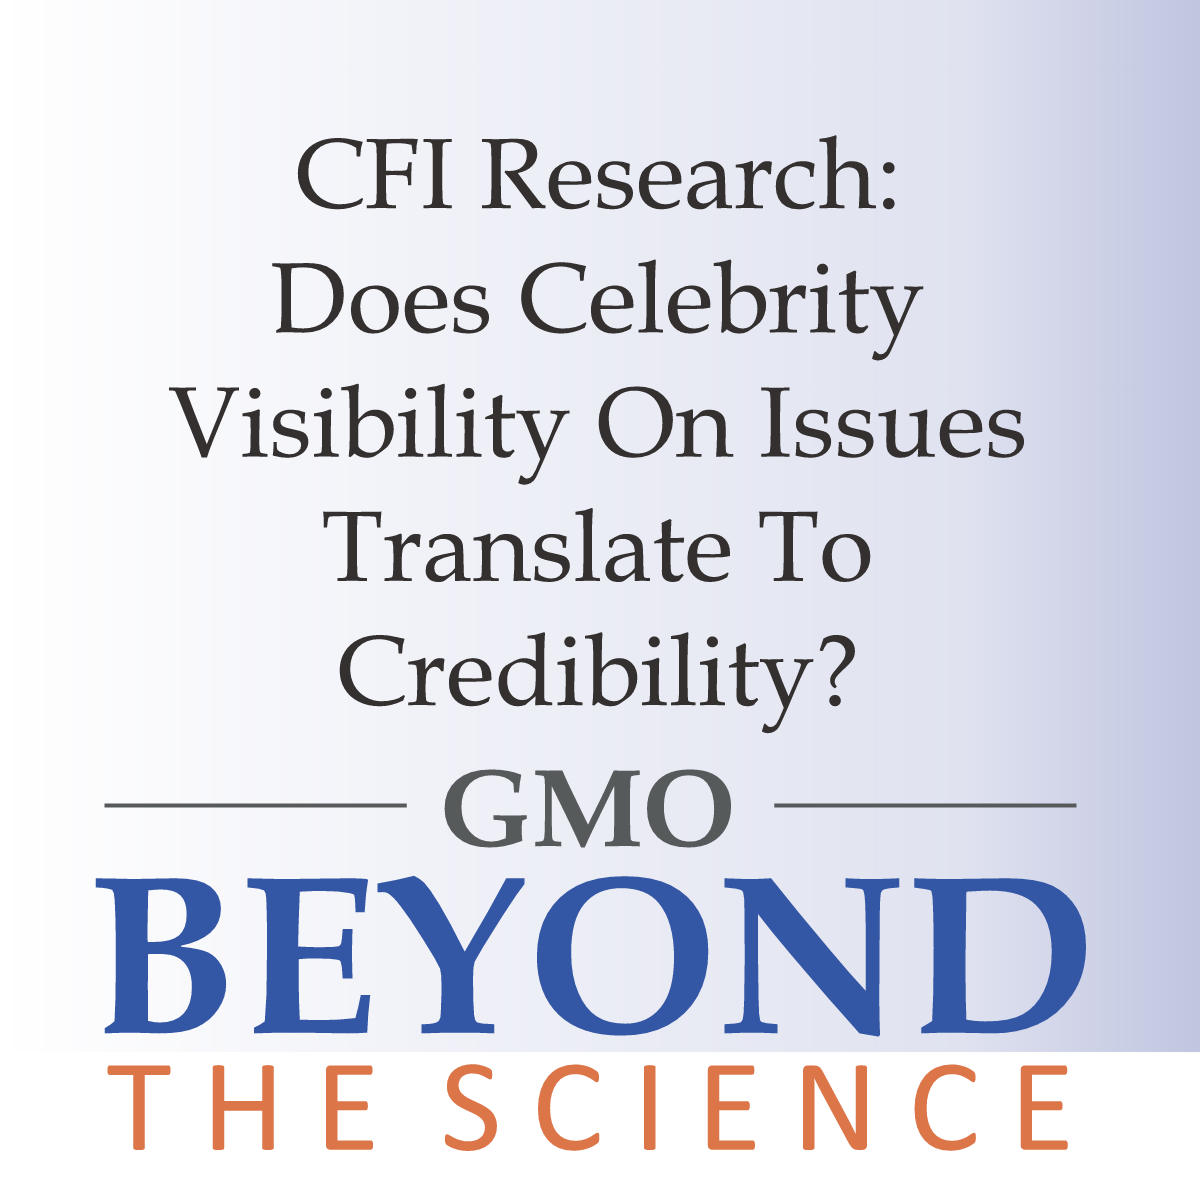 CFI Research: Does Celebrity Visibility On Issues Translate To Credibility?